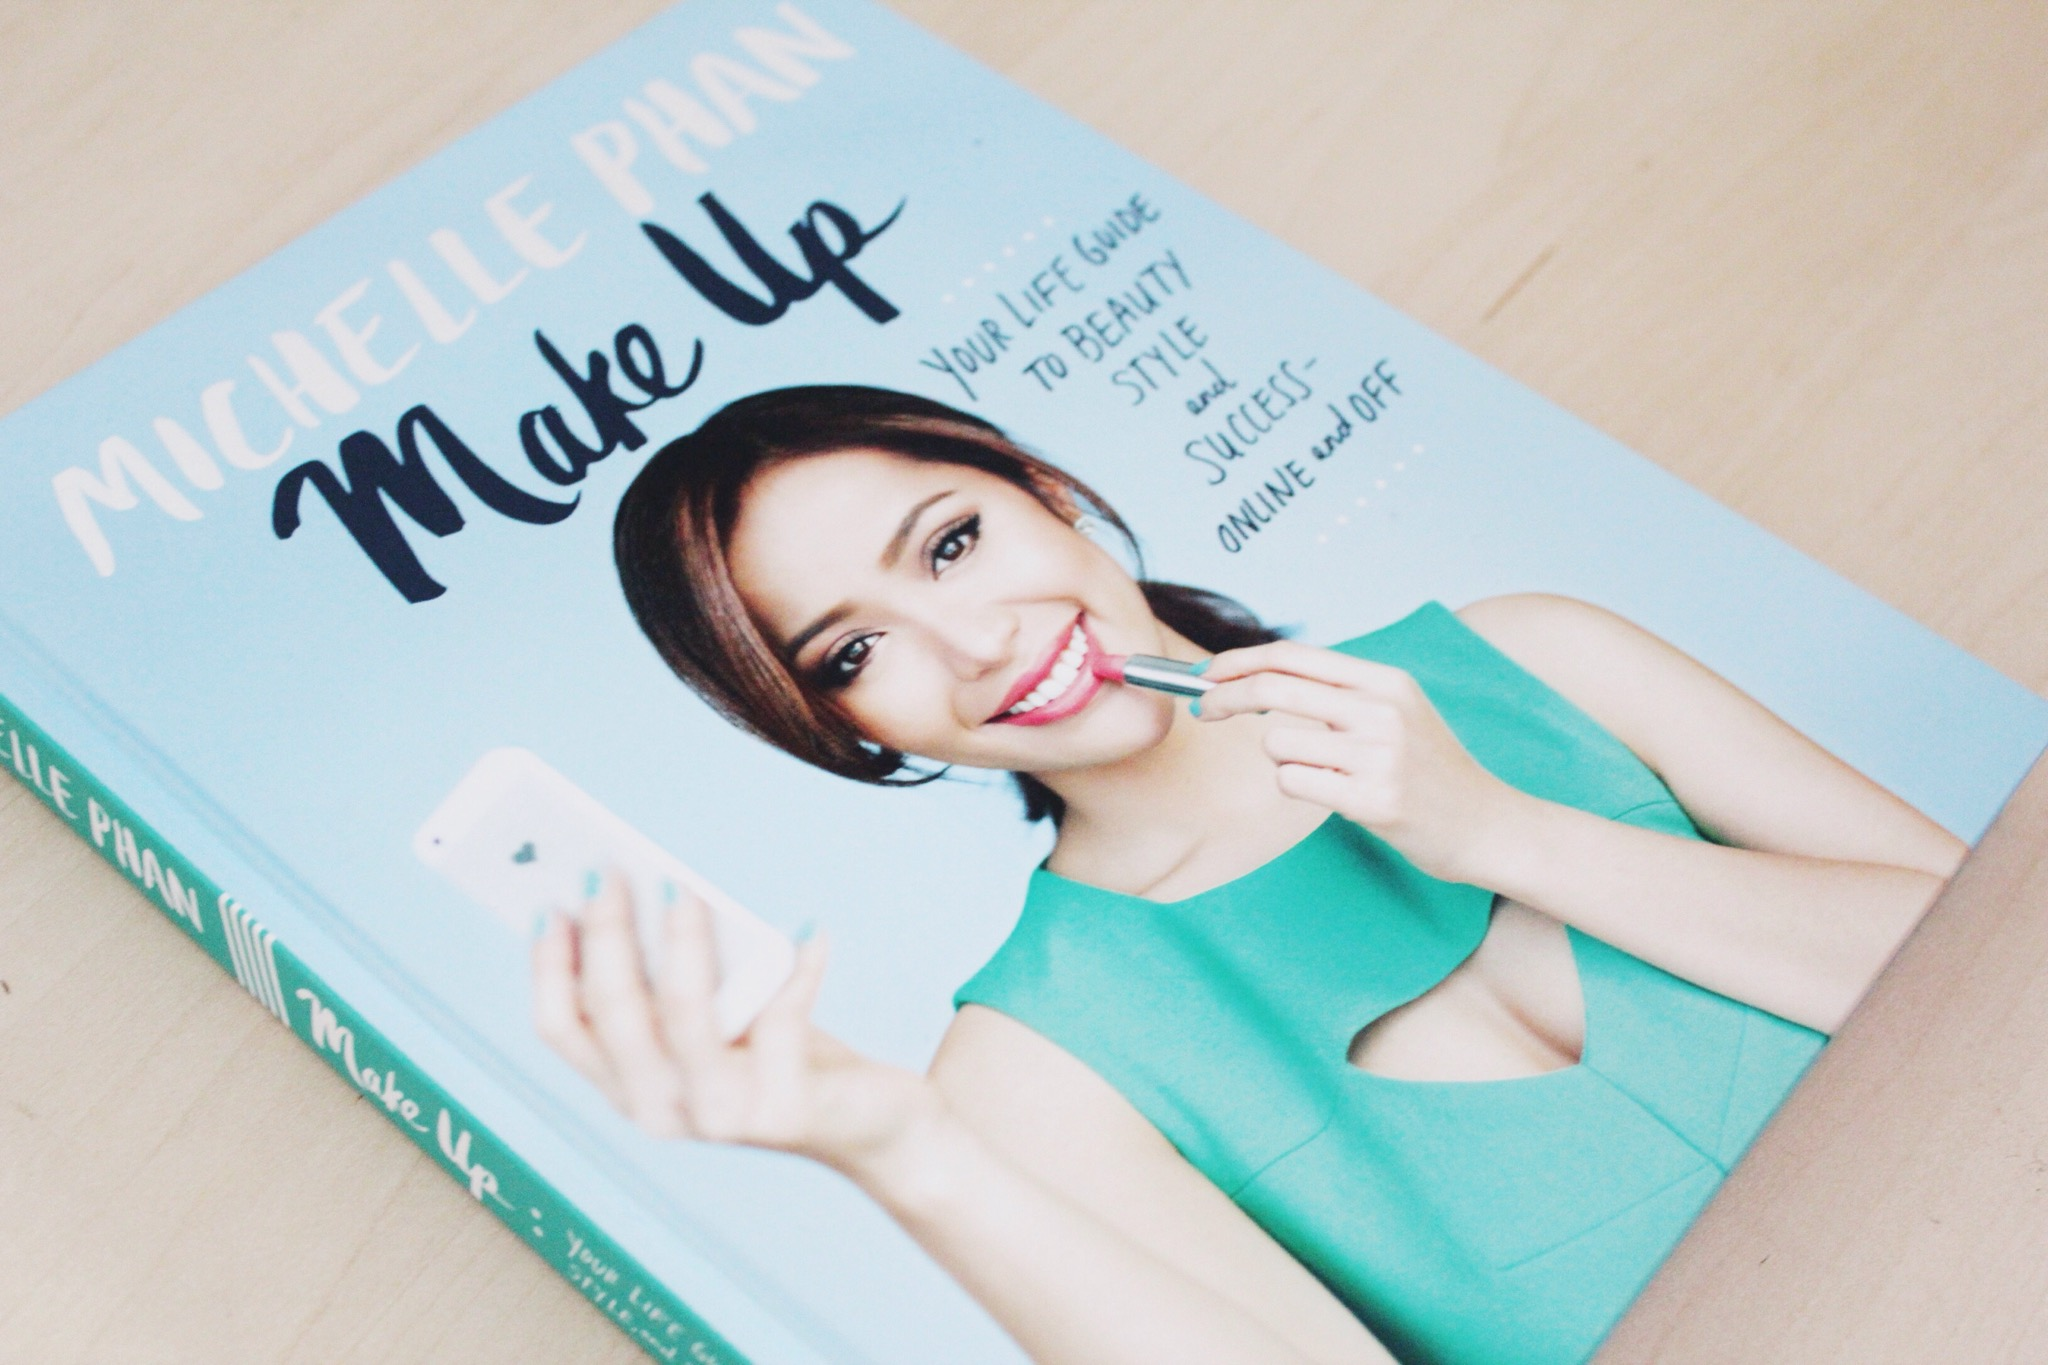 make up: your life guide to beauty, style and success